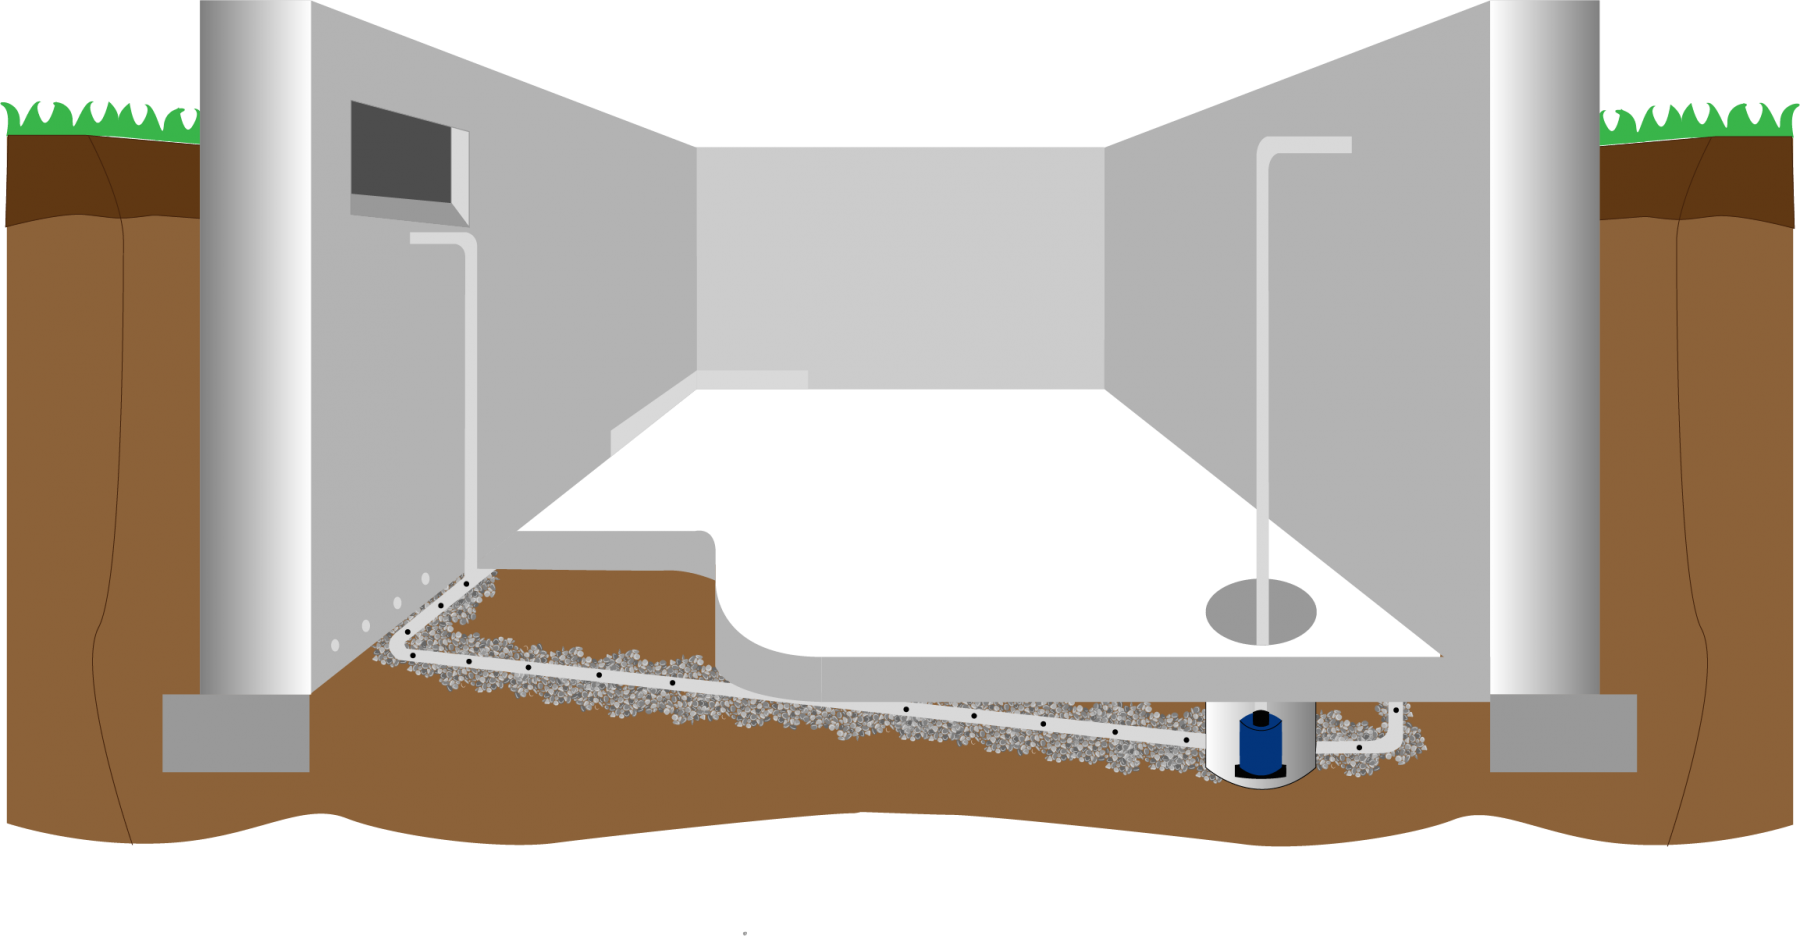 tile basements intrusion how drain basement interior wet water prevent to